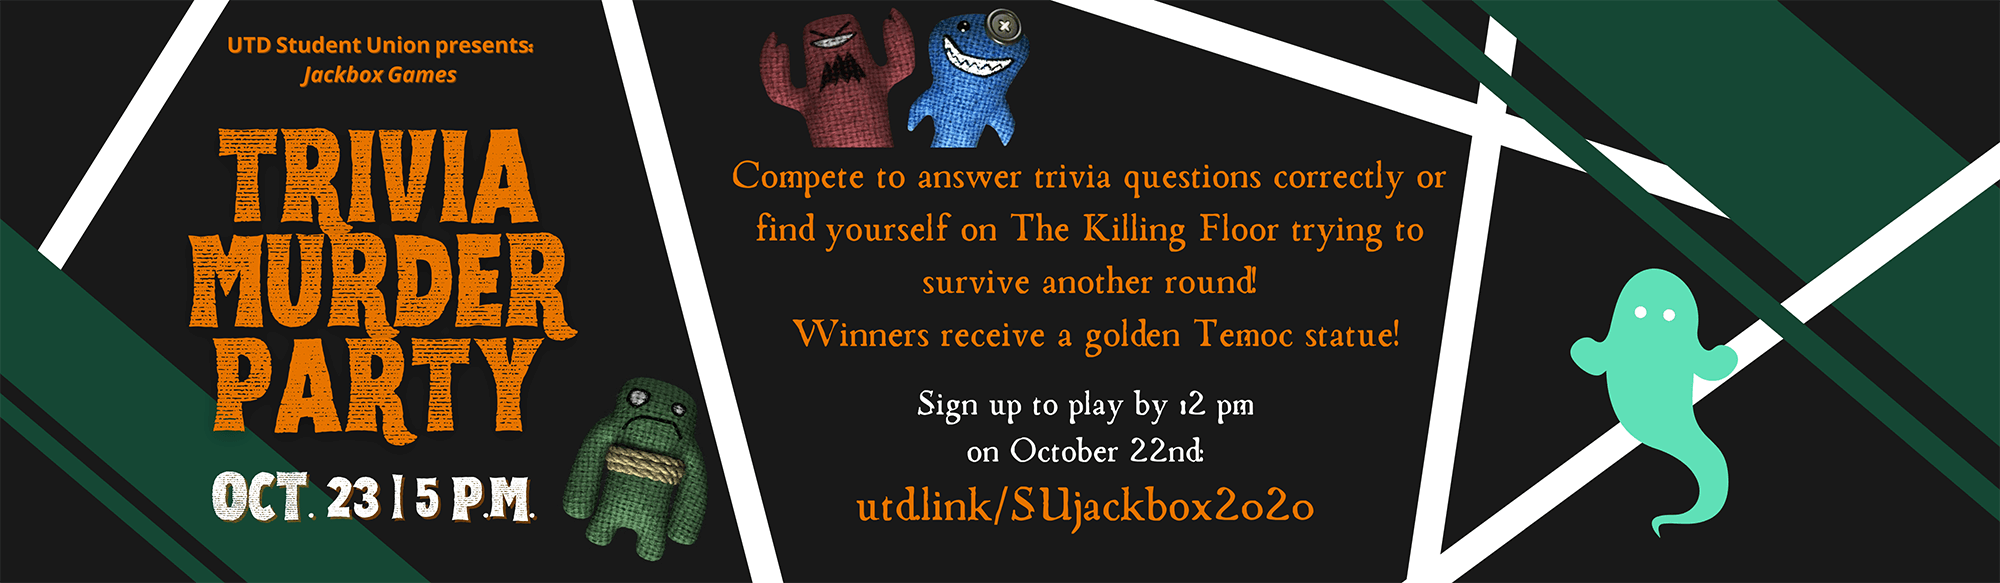 Student Union Trivia Murder Party October 23 5 p.m. Click to sign-up.